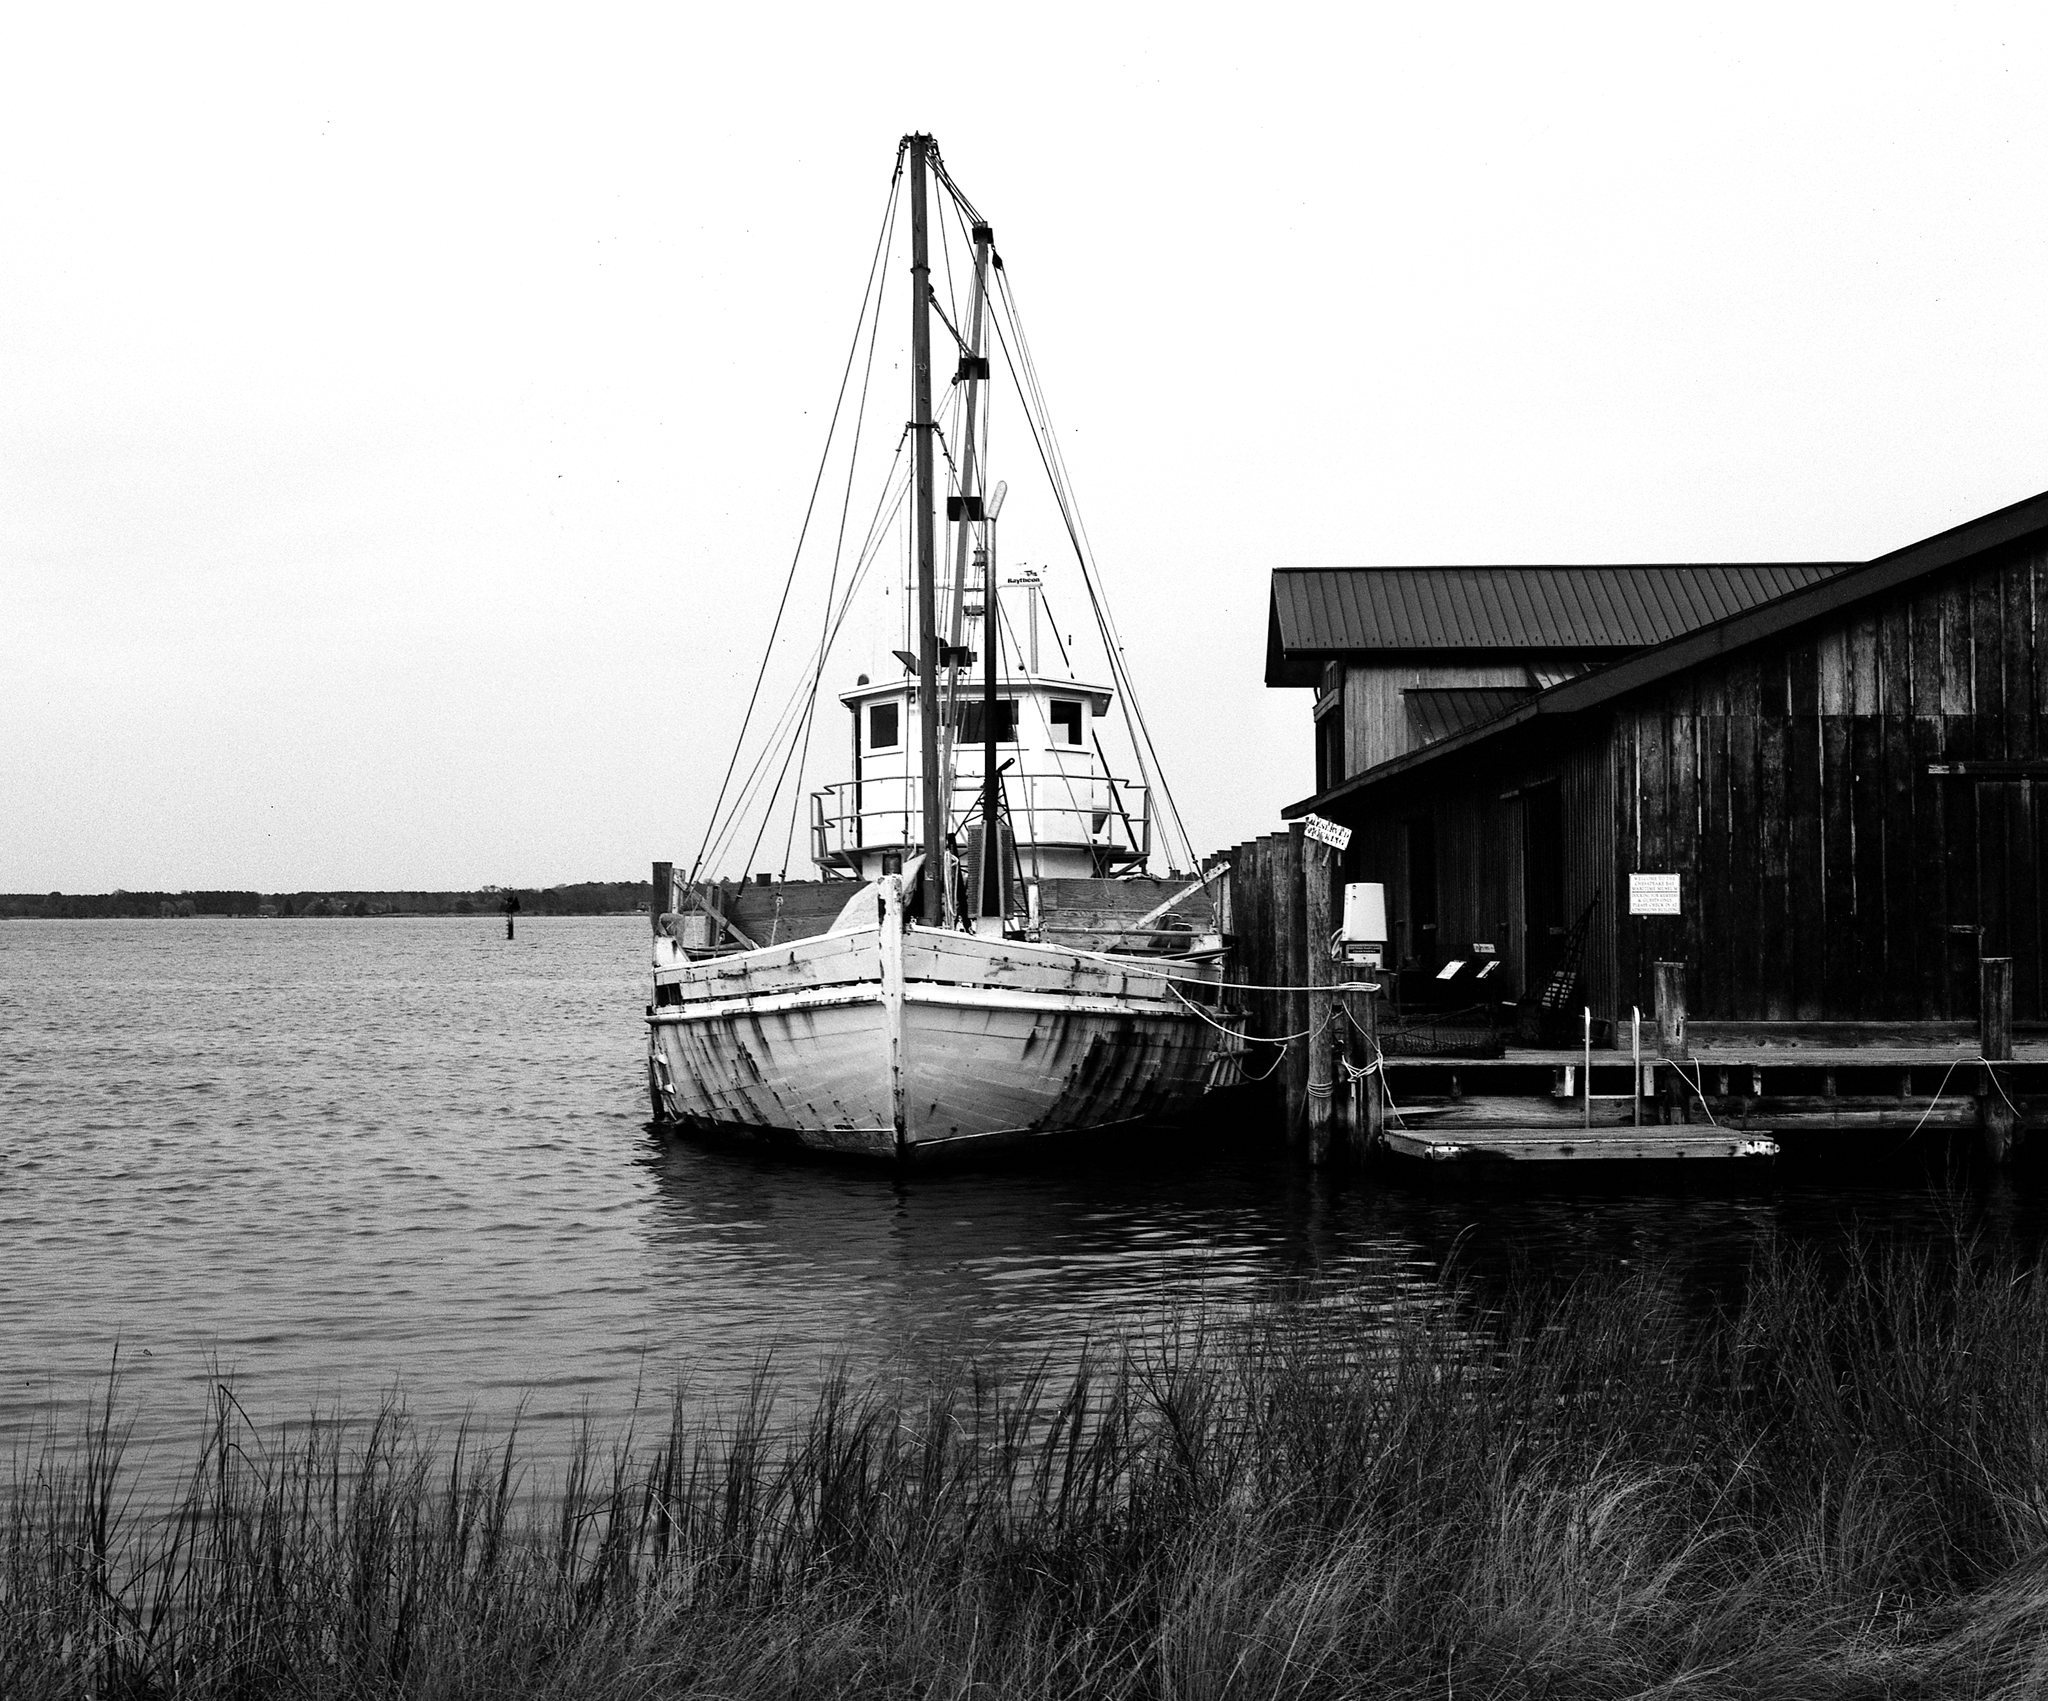 4x5_for_365_project_0112_st_Charles_MD_Boat.png